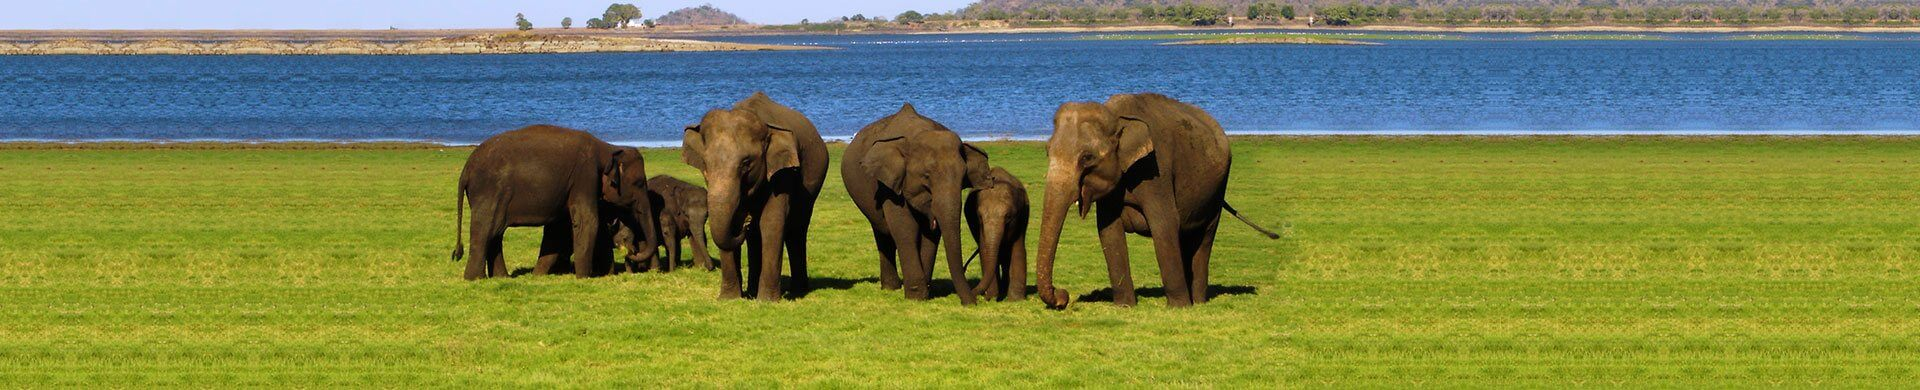 Check elephants in Sri Lanka with Nature Package from the finest Travel Agents in Sri Lanka